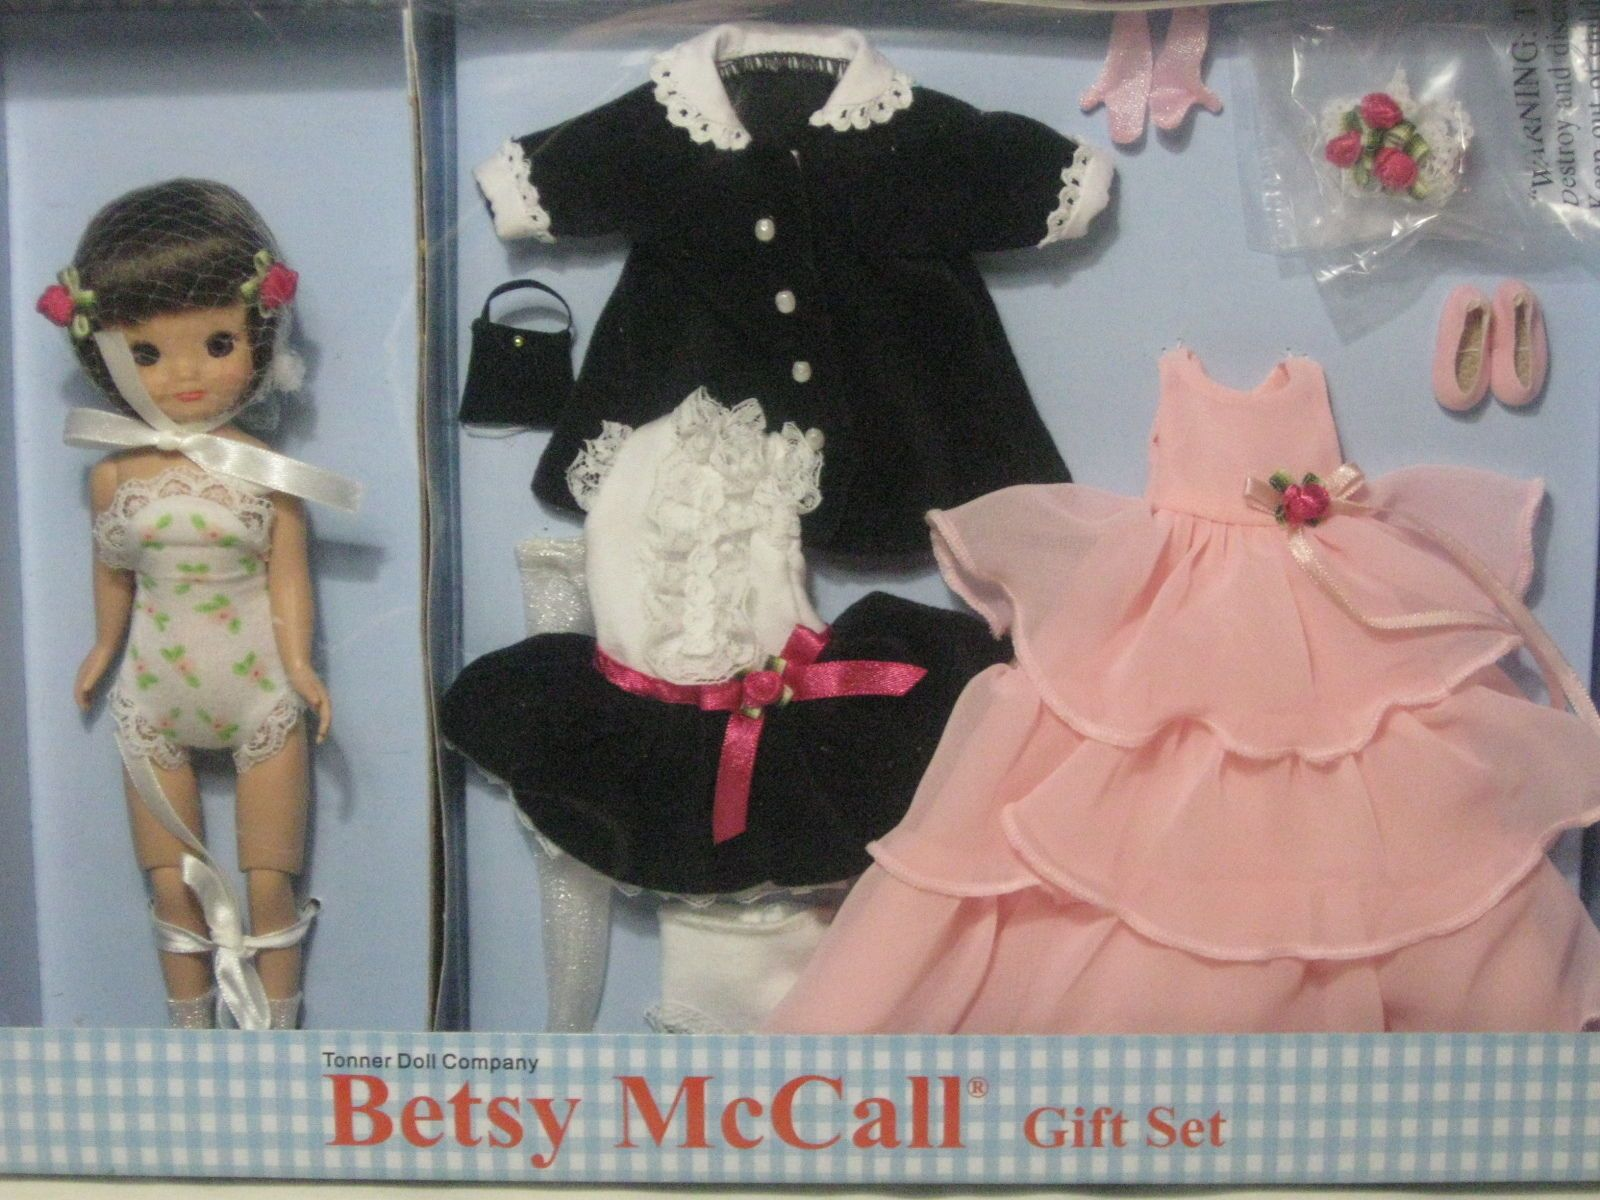 Tonner Tiny Betsy Mccall 8 Doll Formally Yours Betsy Mccall Gift Set Ebay Knitted Dolls Betsy Doll Dress